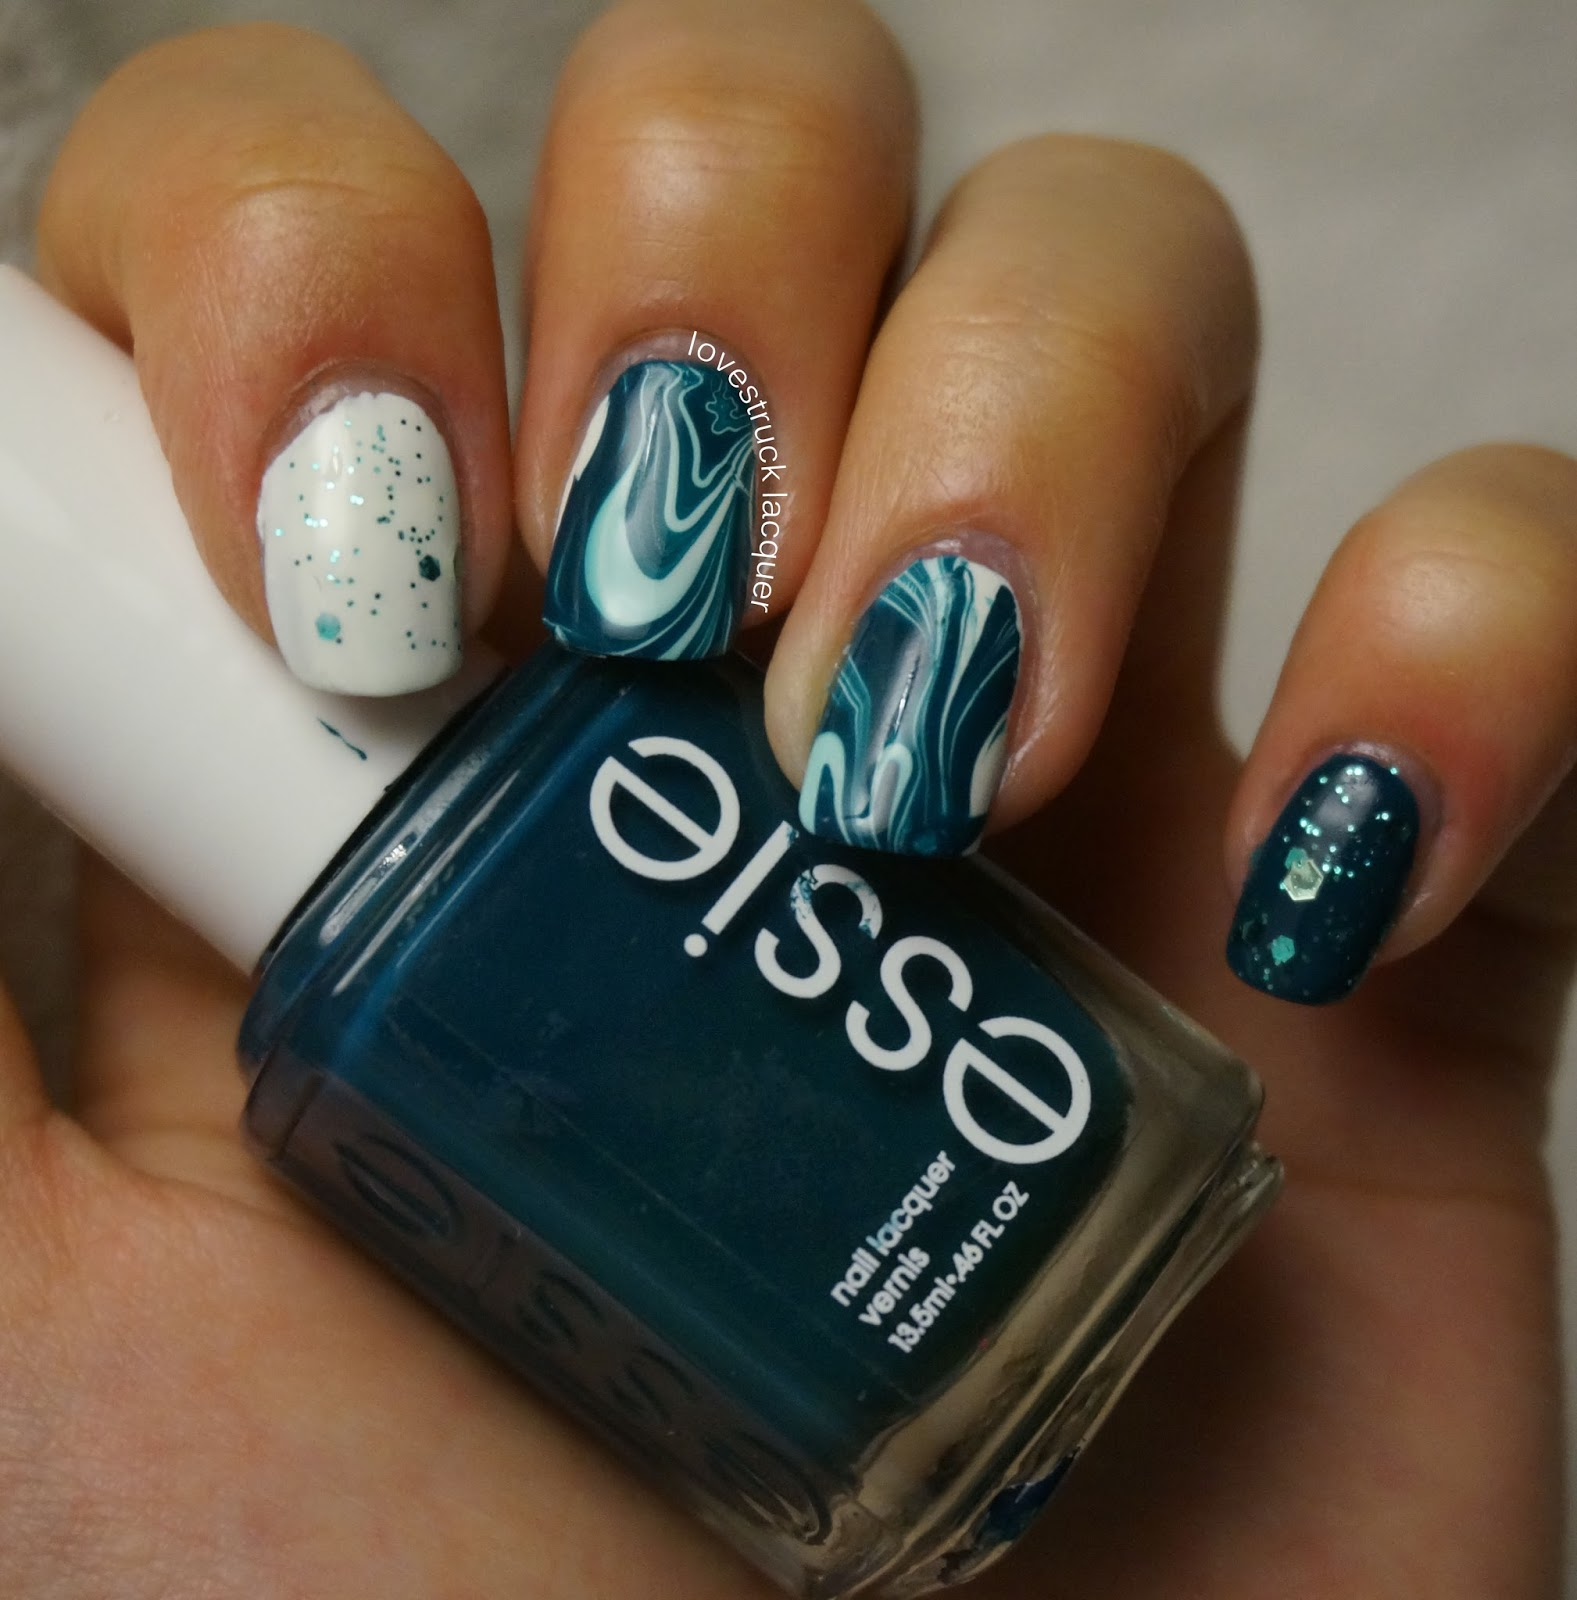 Lovestruck Lacquer Busy Girl Nails Winter Nail Art Challenge Teal